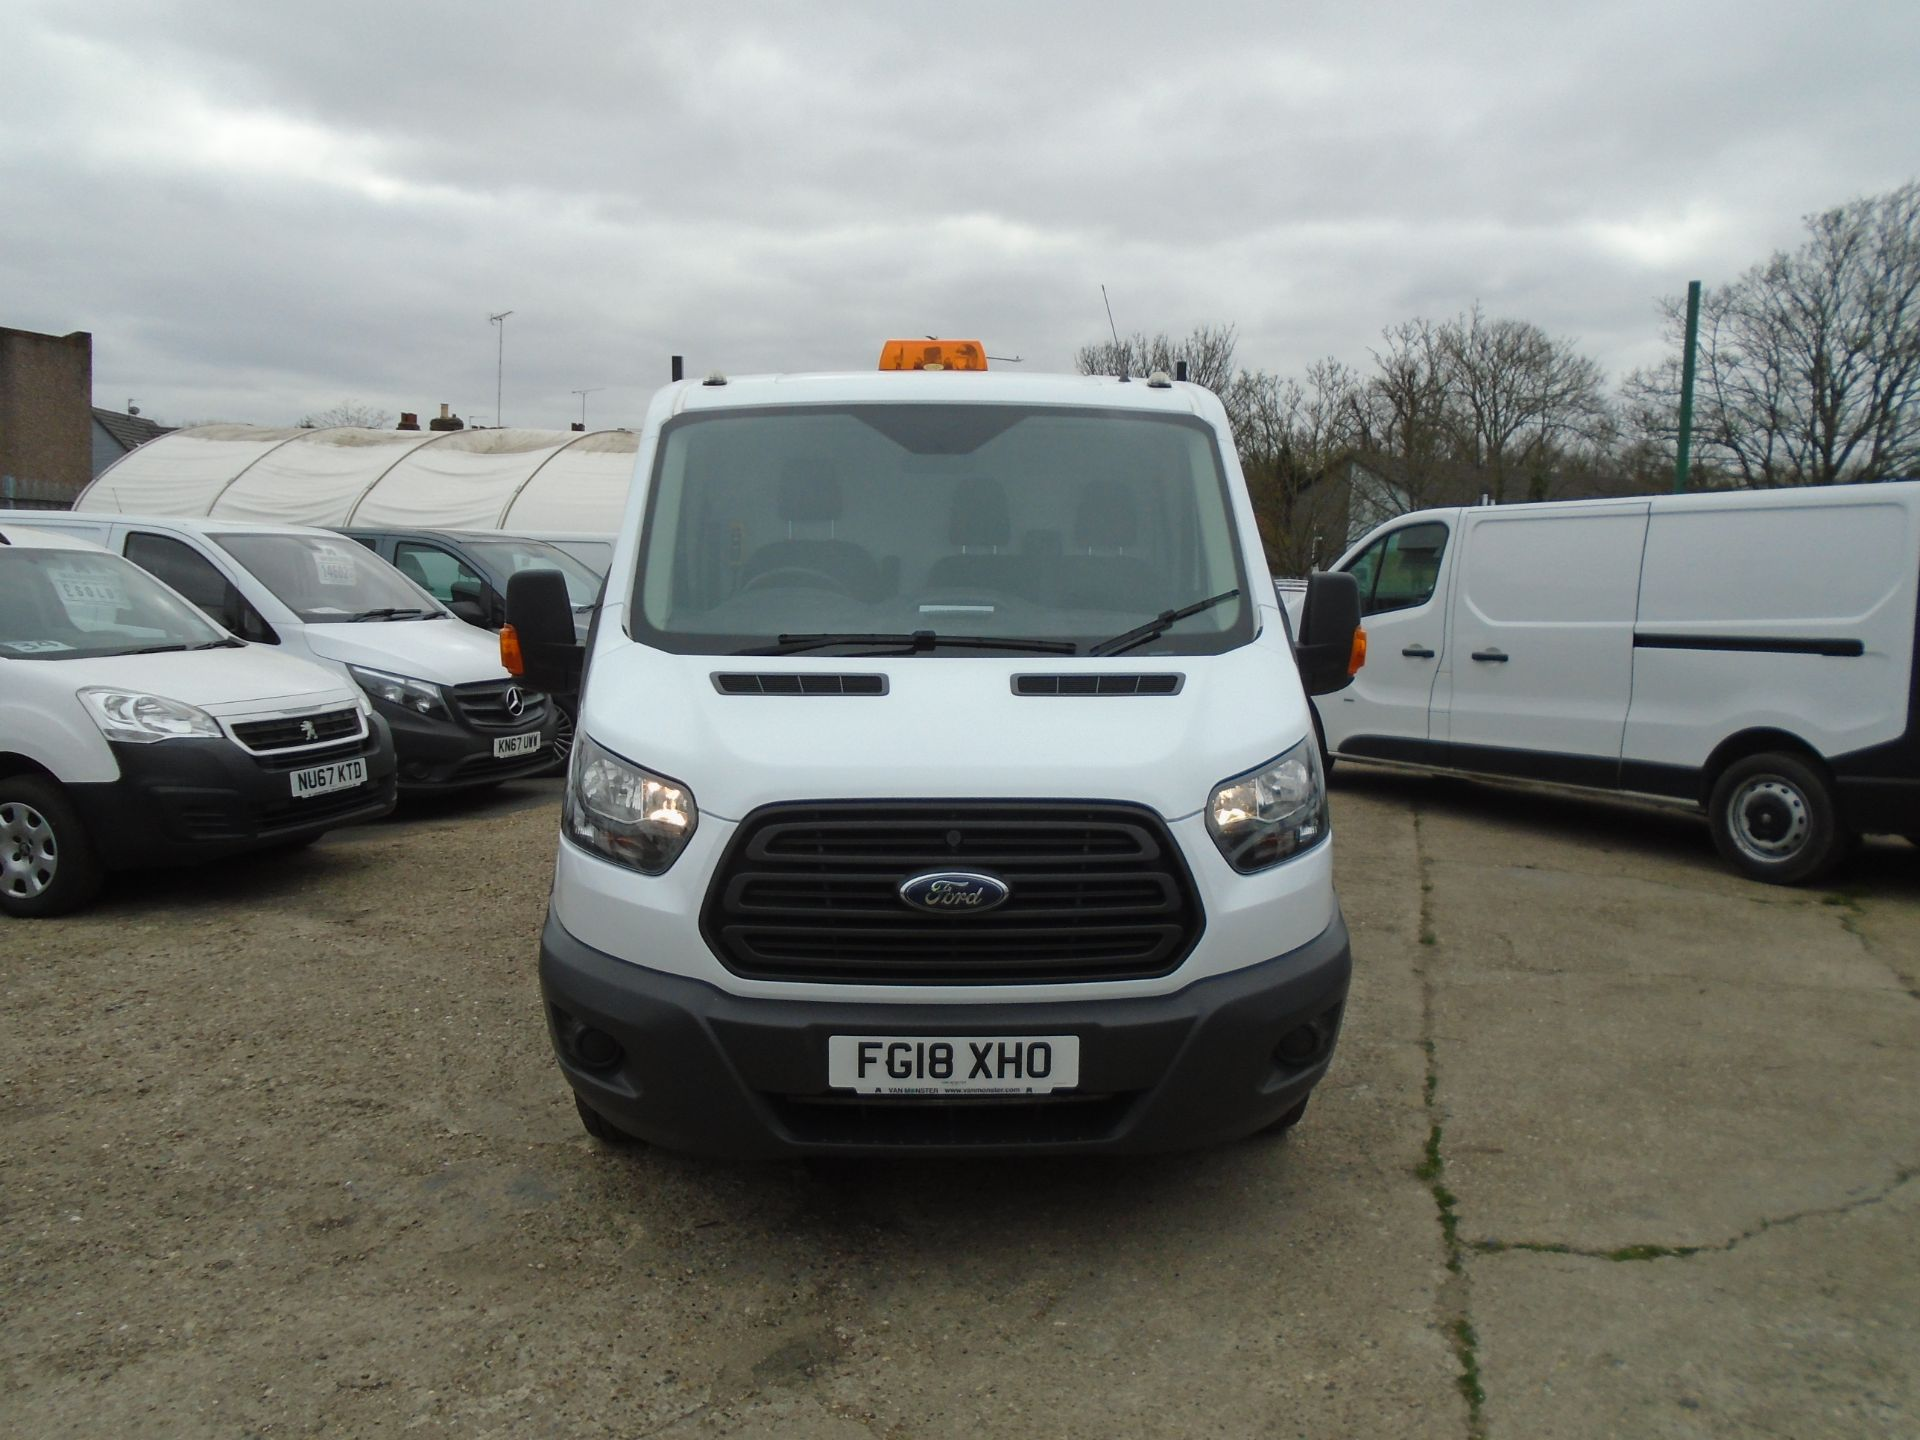 2018 Ford Transit 2.0 Tdci 130Ps Double Cab *NO REAR SEATS* (FG18XHO) Image 2